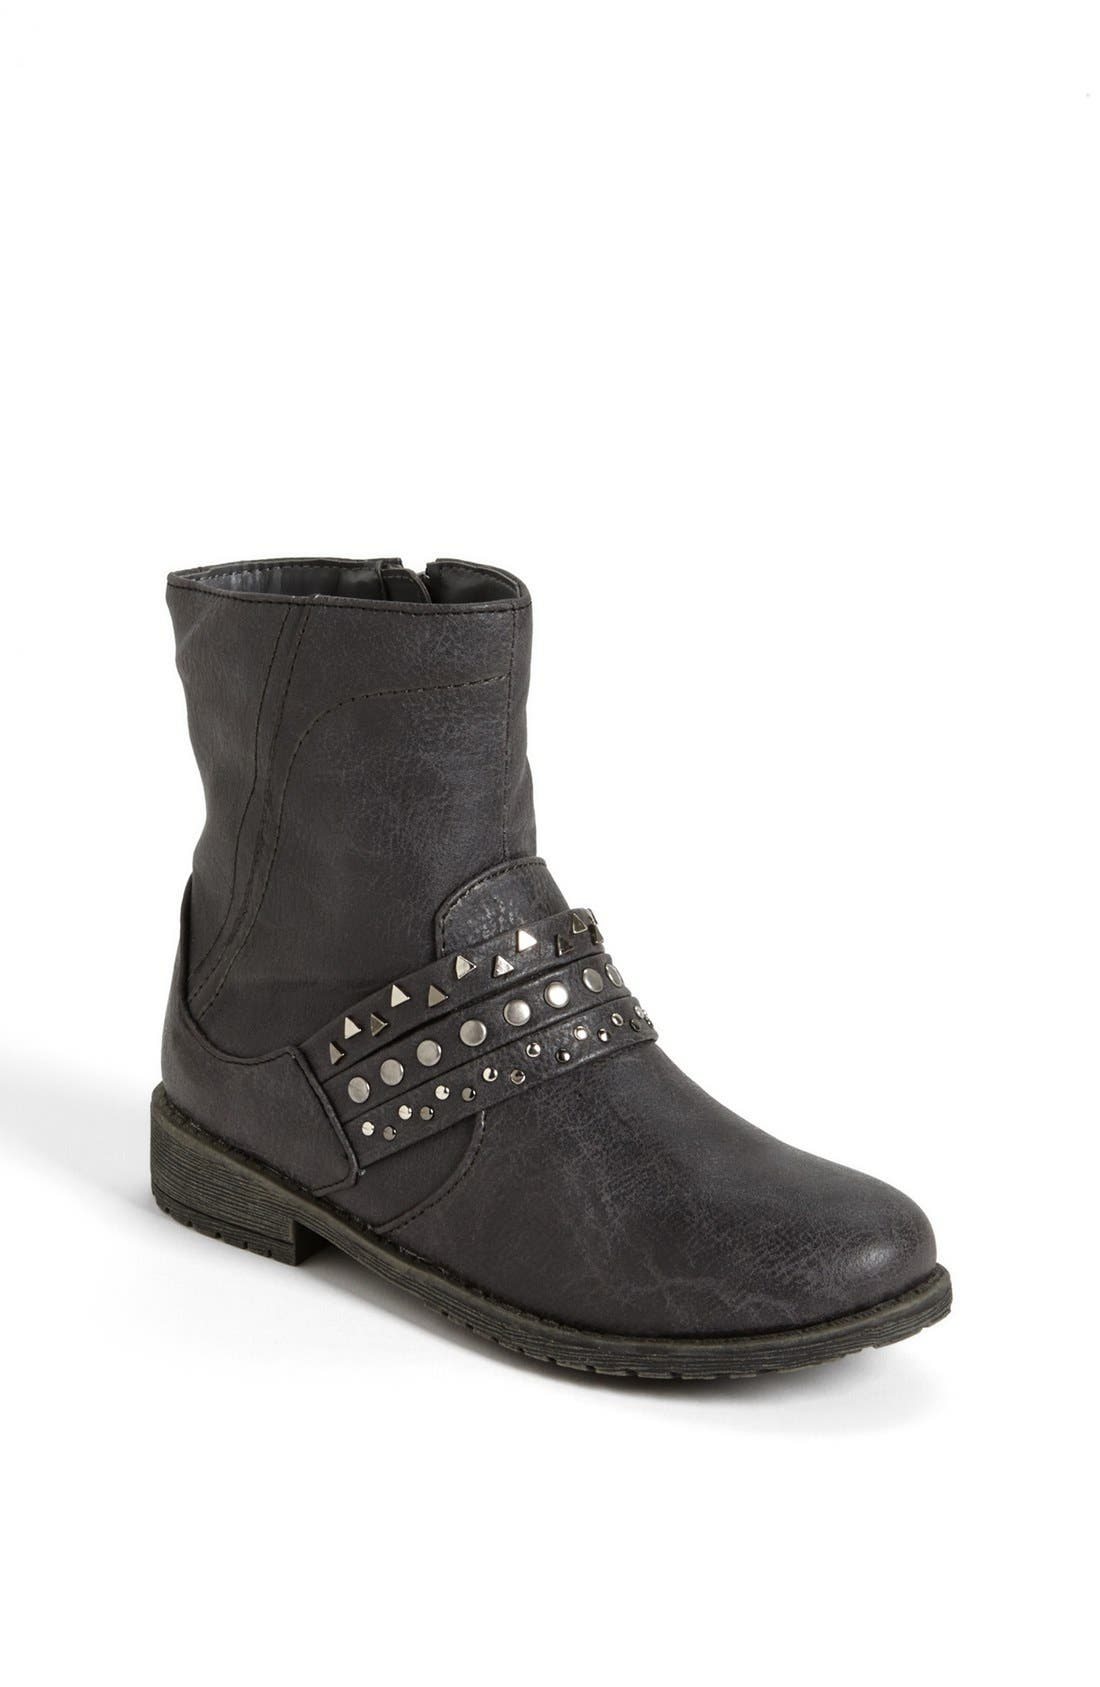 Alternate Image 1 Selected - Kenneth Cole Reaction 'Piece of Flake' Boot (Little Kid & Big Kid)